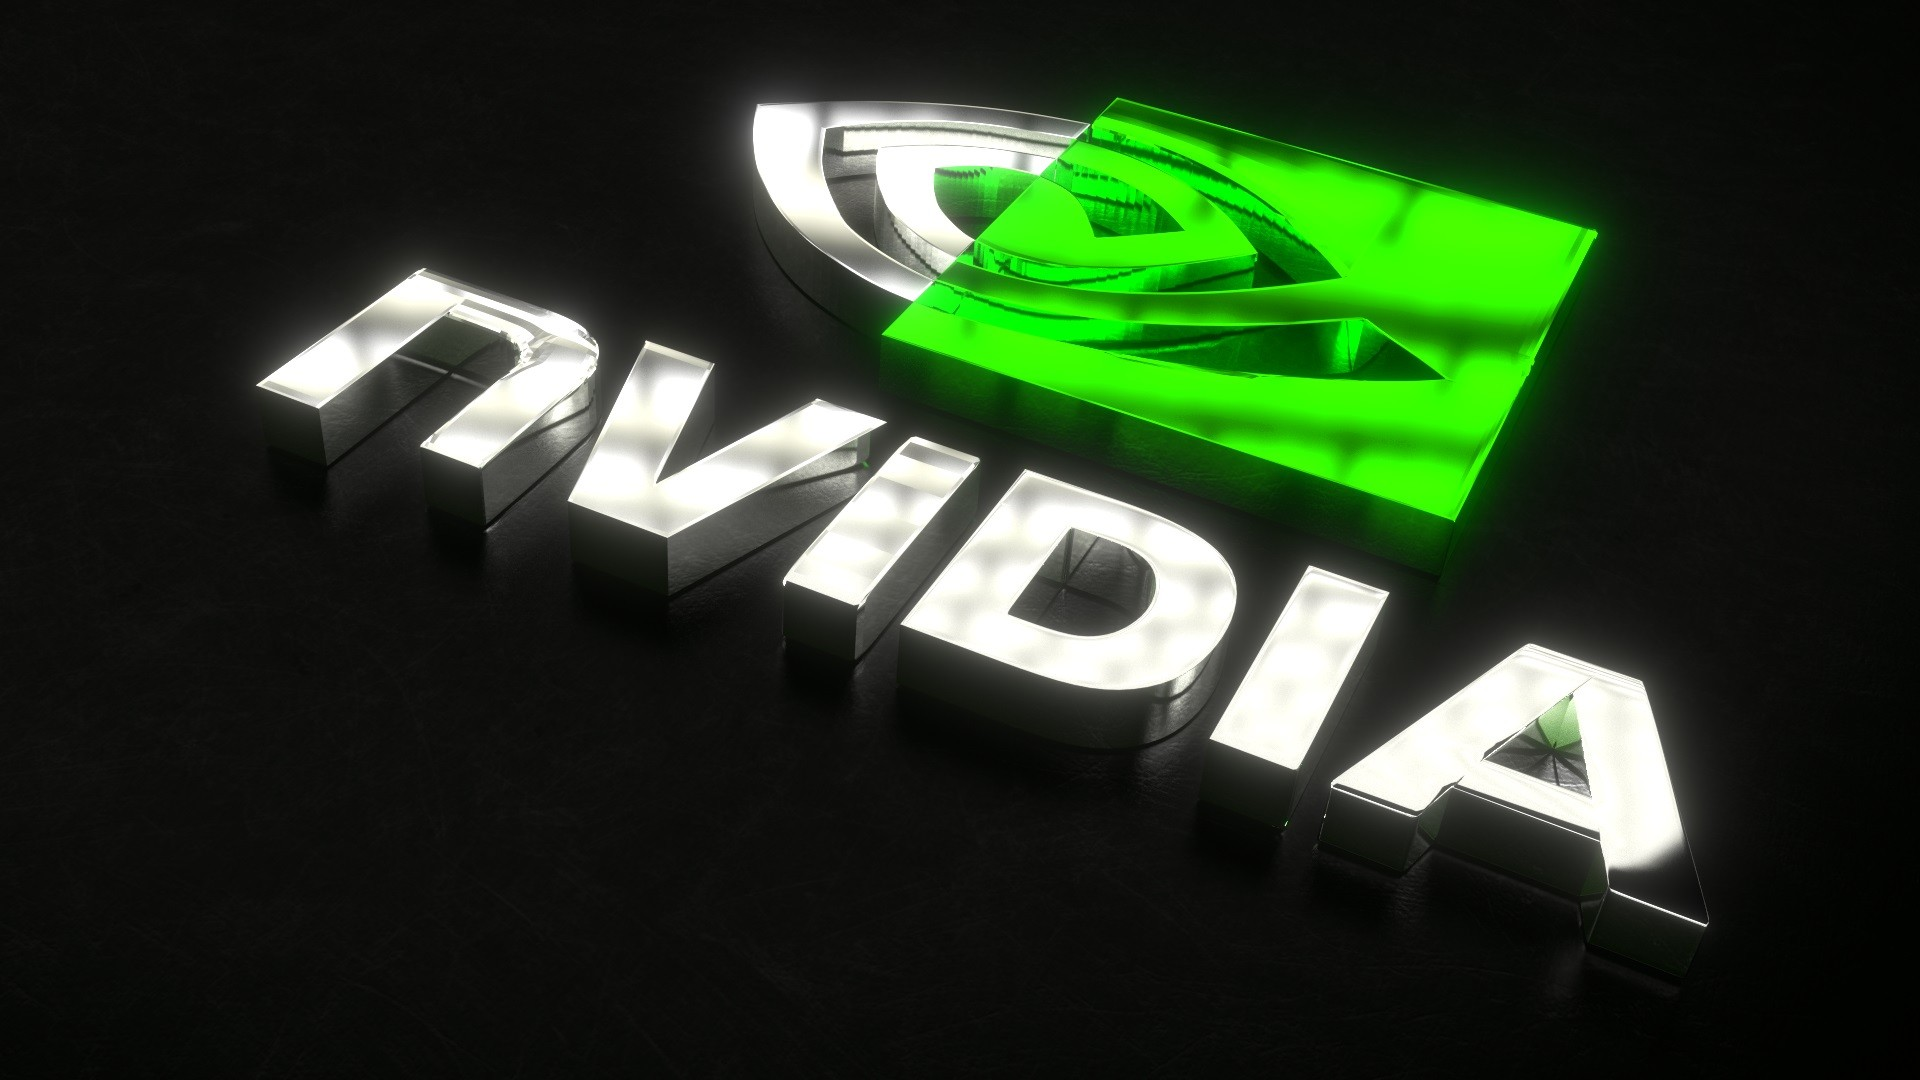 NVIDIA Corporation (NVDA) Holding Reduced by Riverhead Capital Management LLC